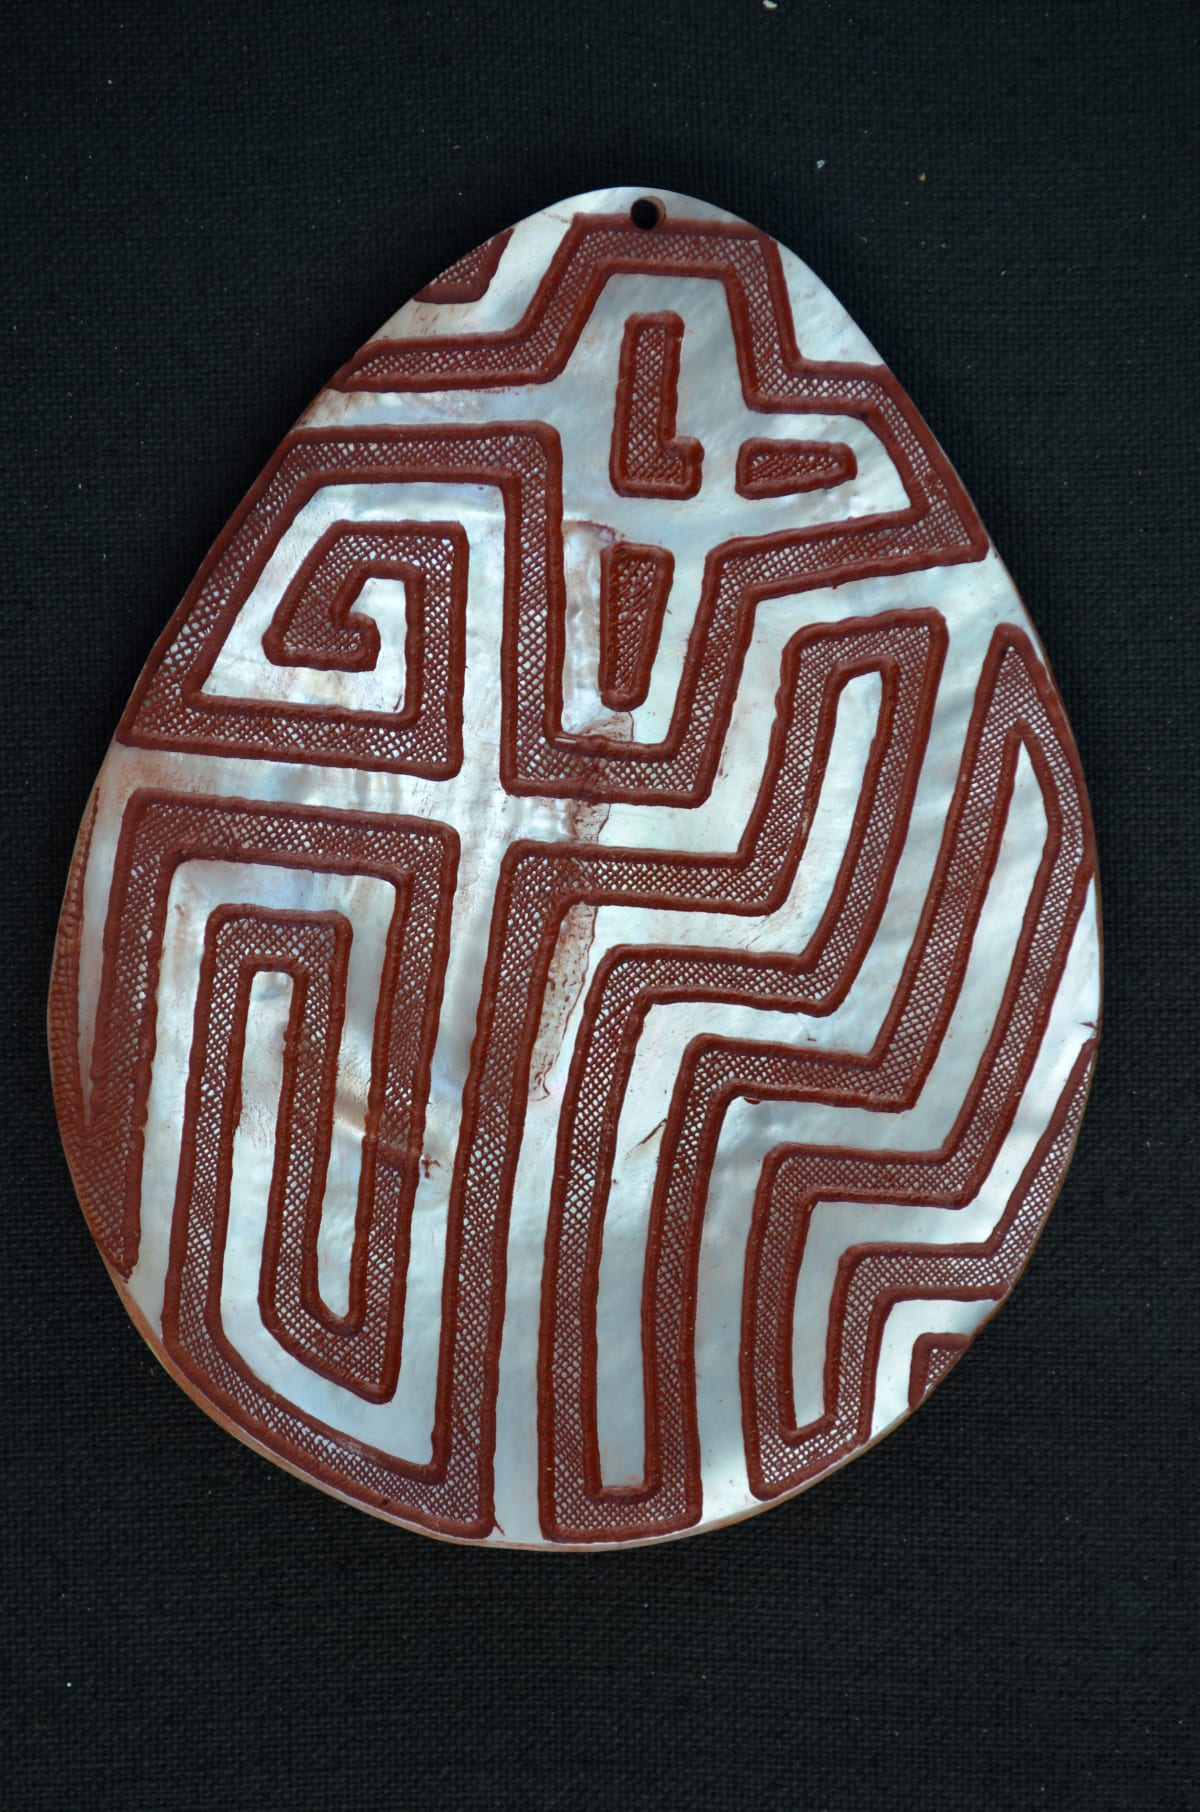 Sebastian Arrow Riji carved pearl shell & red ochre 17 x 13 cm